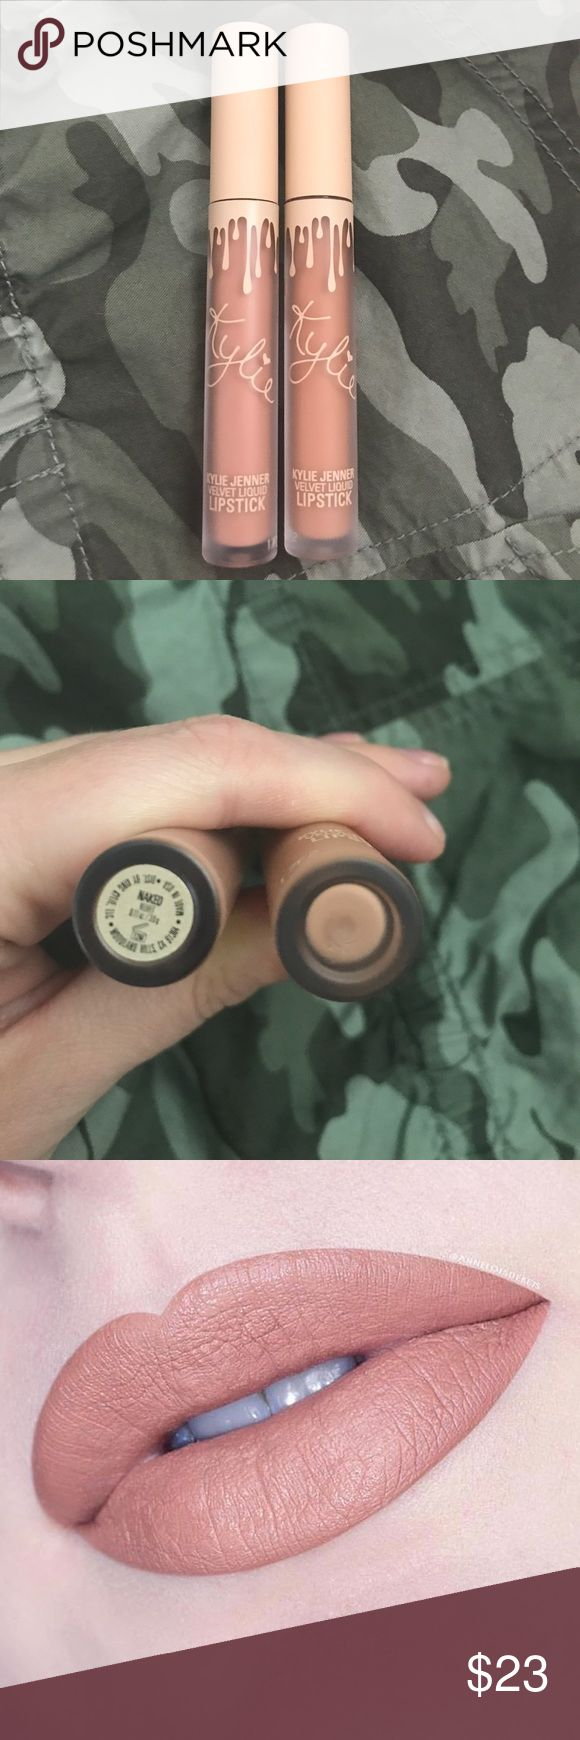 """Kylie lipsticks Send me Nudes Vaca Collection NAKED and BIRTHDAY SUIT💄💋These are 2 of the lipsticks from the Send Me Nudes box in the Vaca Collection. These were only swatched on my hand, and I decided did not compliment my skin tone. The one lipstick does have a missing sticker, but it is 100% """"Birthday Suit"""" because I kept the other 2 and they have stickers. This was $45 total so Im asking for the cost of each lipstick, which is $11.25 each. Kylie Cosmetics Makeup Lipstick"""